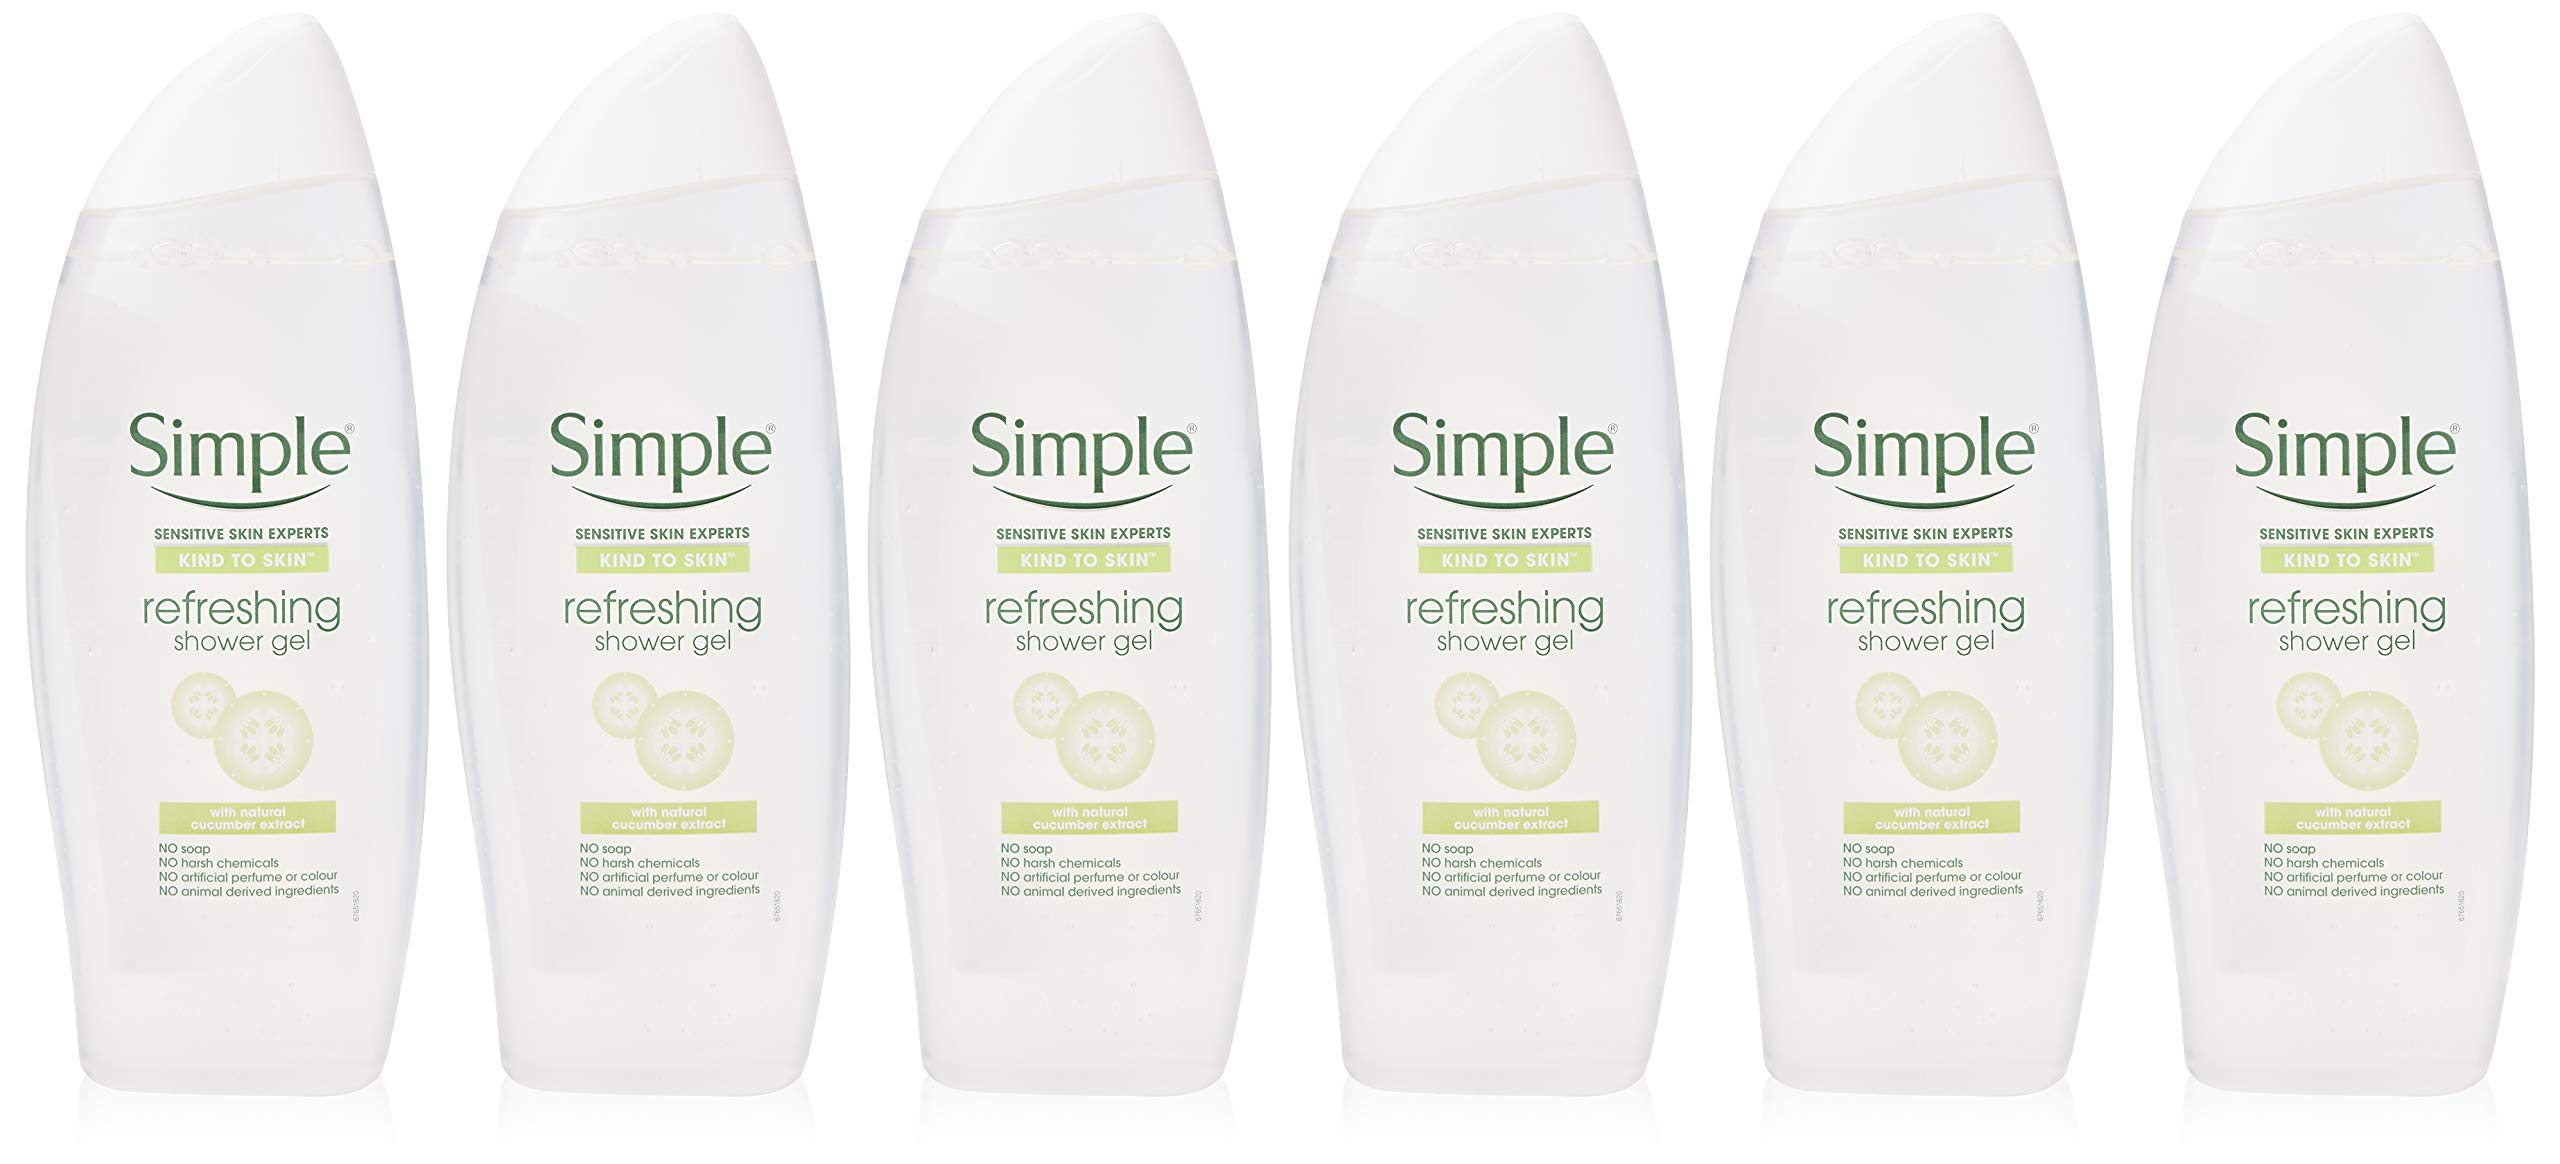 Simple Kind to Skin Shower Gel, Refreshing Body Wash for Men and Women, 3 Months Supply, (6 x 500 ml)